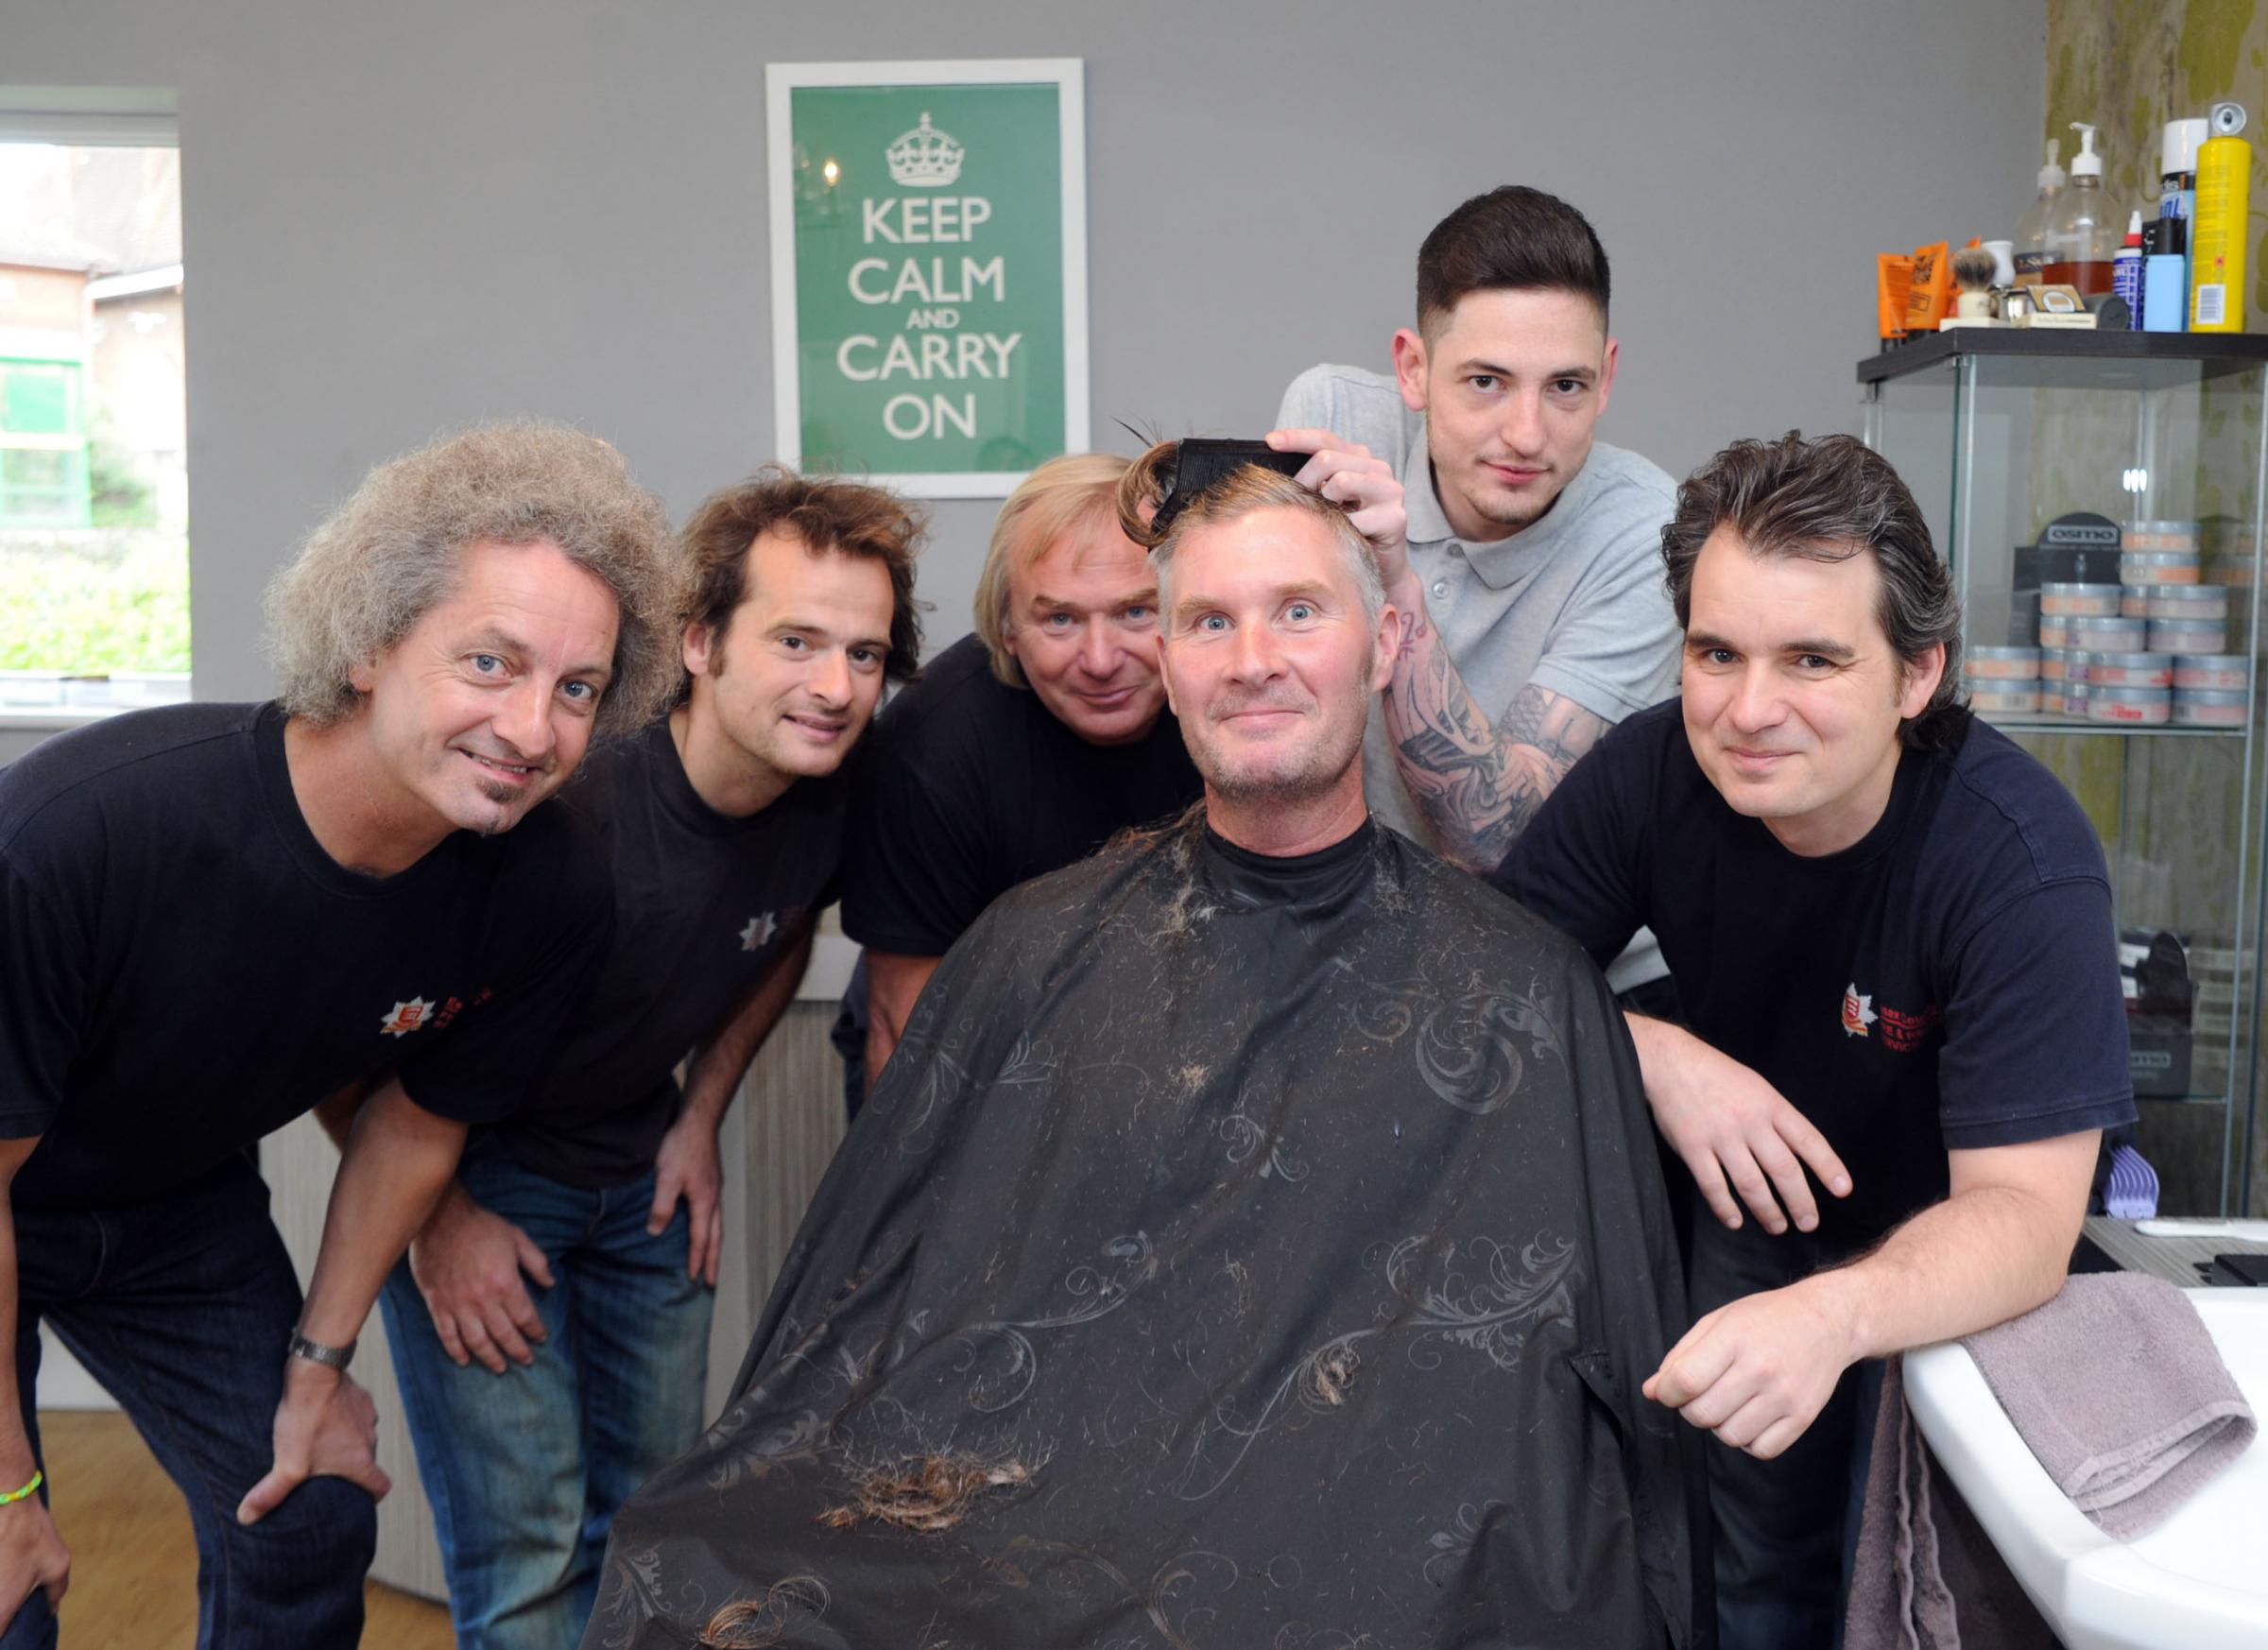 Hair today – from left, Allan Weidner, Rob Tubb, Dave Allen, Chris Seal, Kieron Bailhan